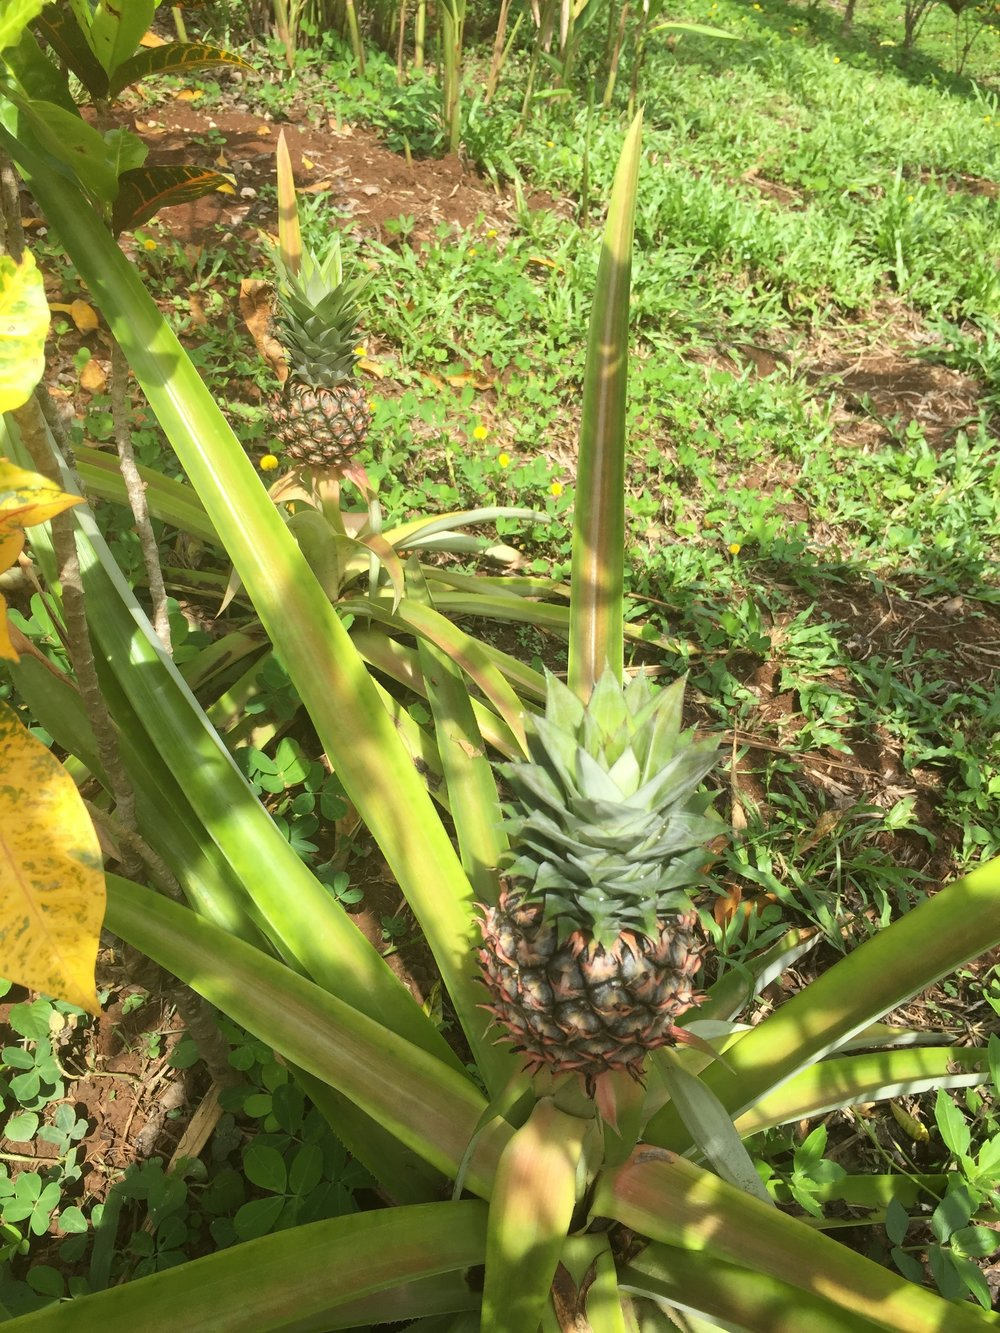 Pineapples grown on property